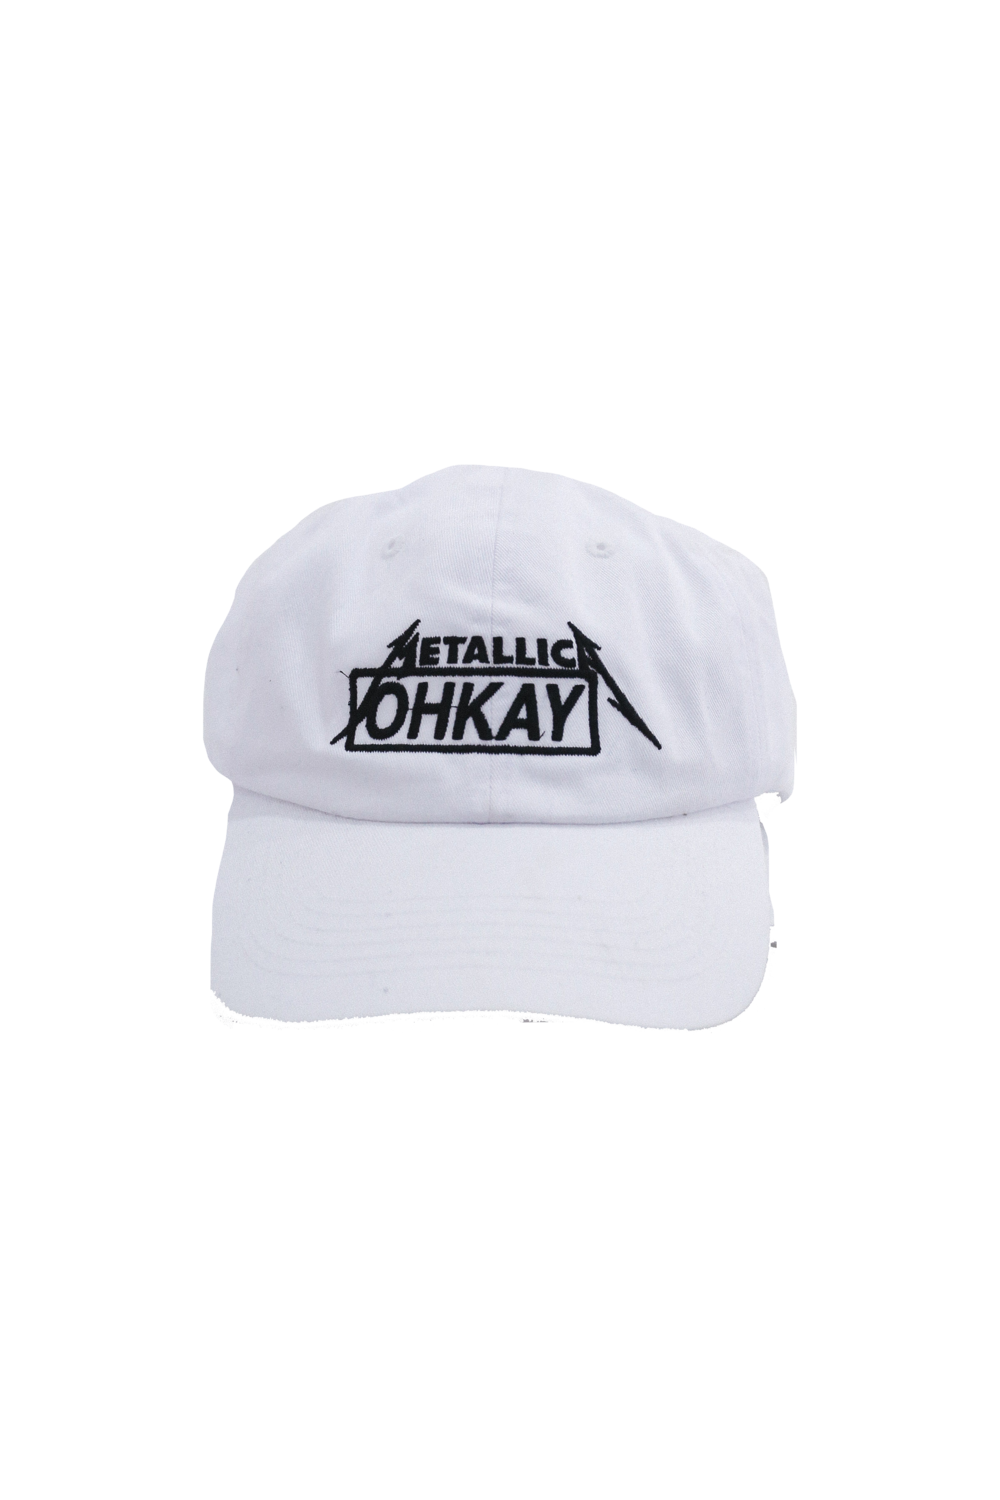 metallica hat.png